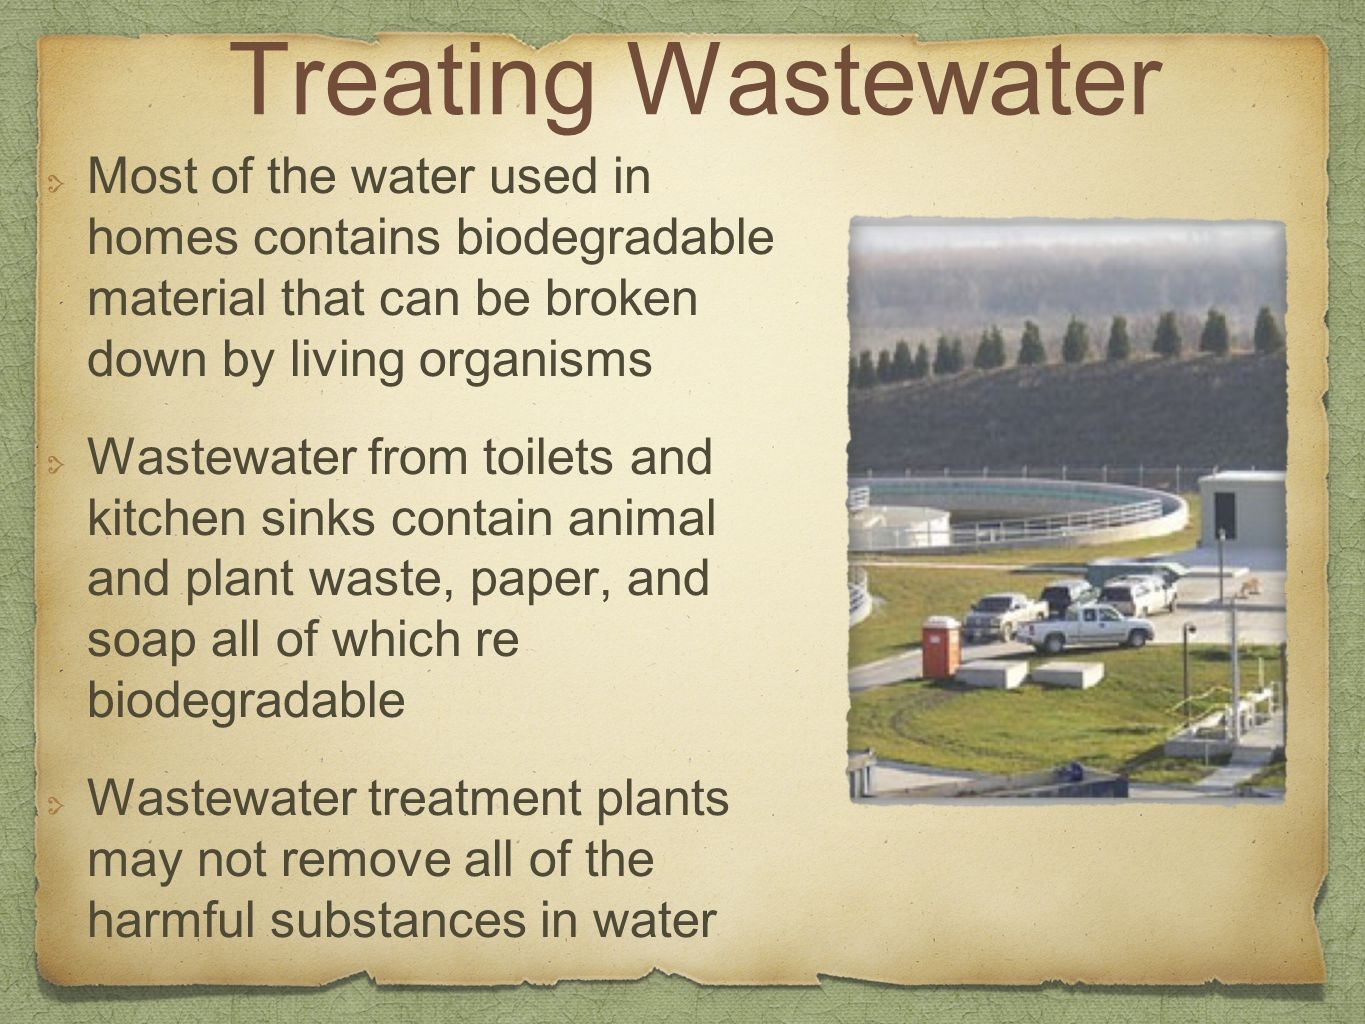 Treating Wastewater Most of the water used in homes contains biodegradable material that can be broken down by living organisms.